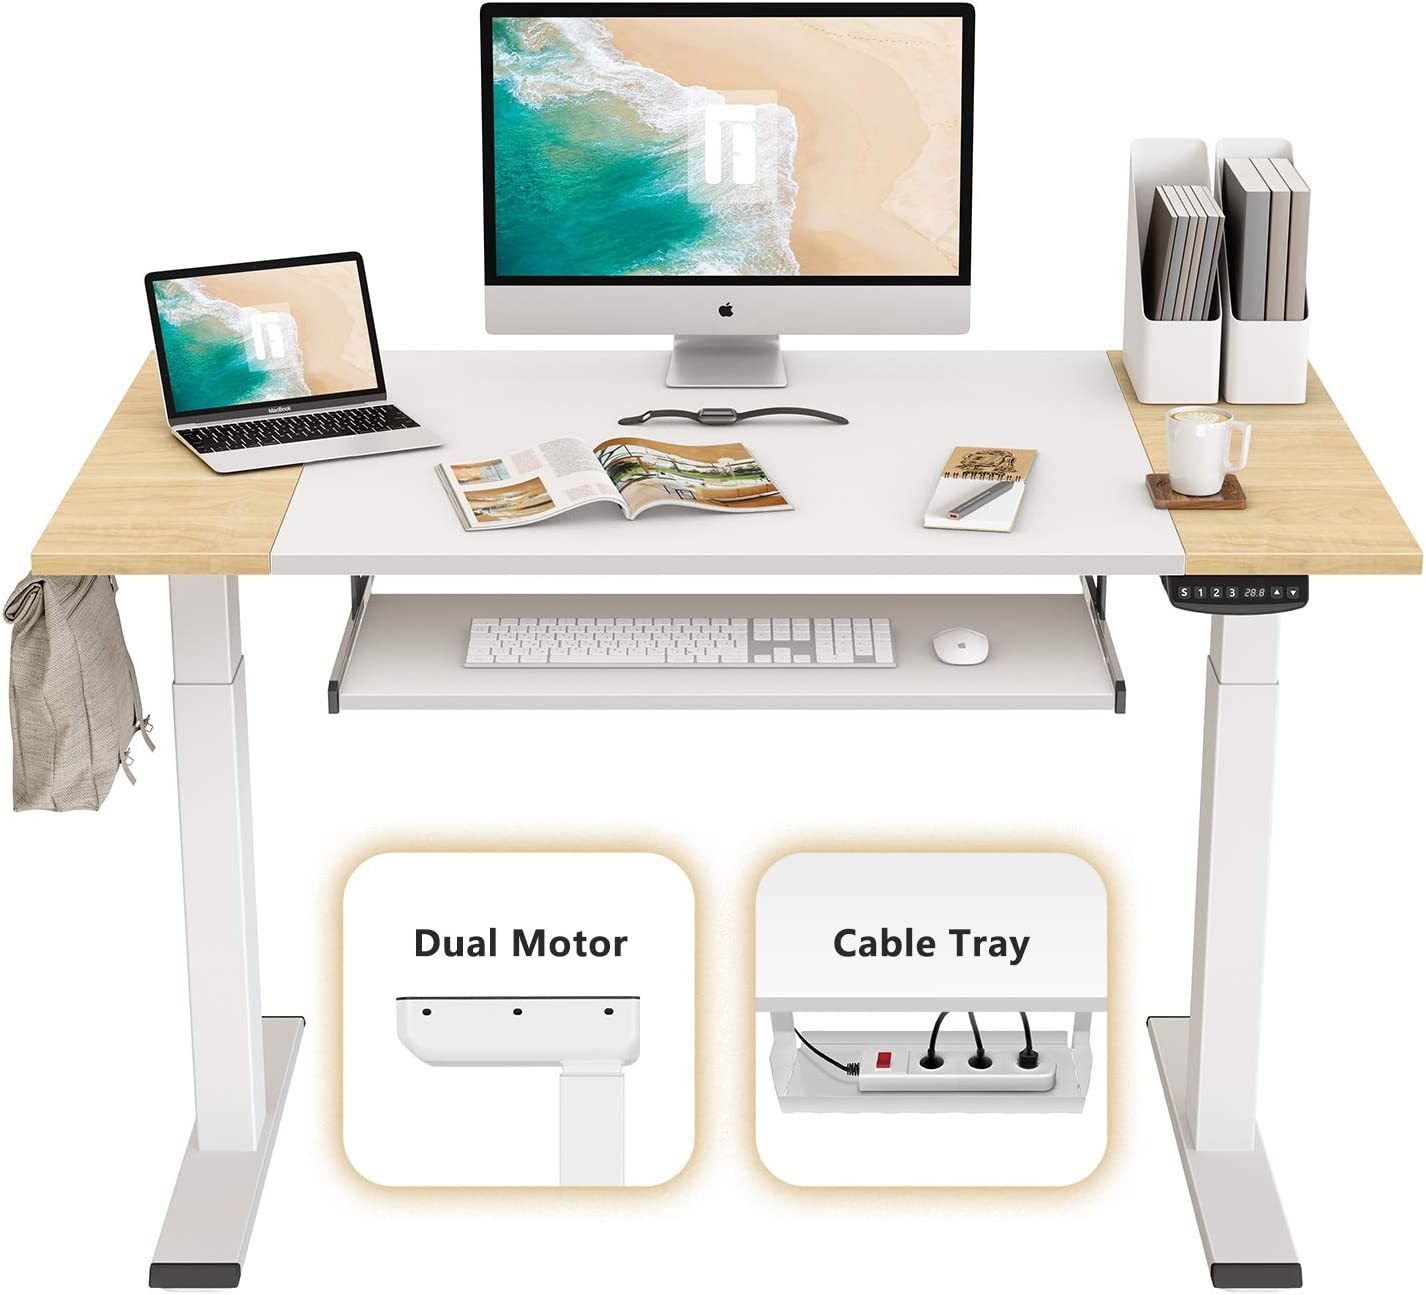 FEZIBO Dual Motor Height Adjustable Electric Standing Desk, 48 x 24 Inches Full Sit Stand Home Office Table with Splice Board, White Frame/Natural and White Top